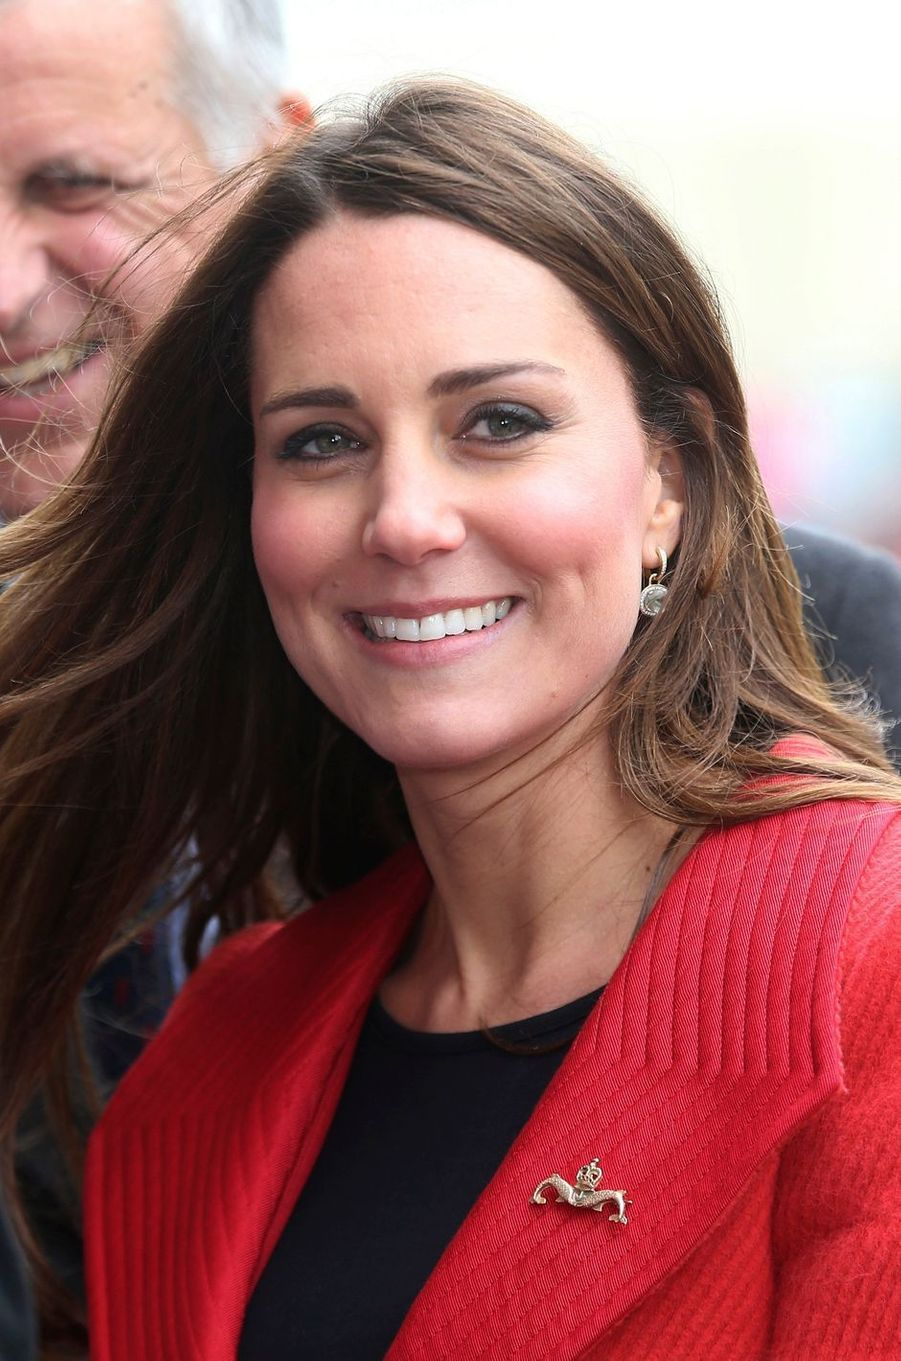 La duchesse de Cambridge, née Kate Middleton, à Barrow-in-Furness le 5 avril 2013